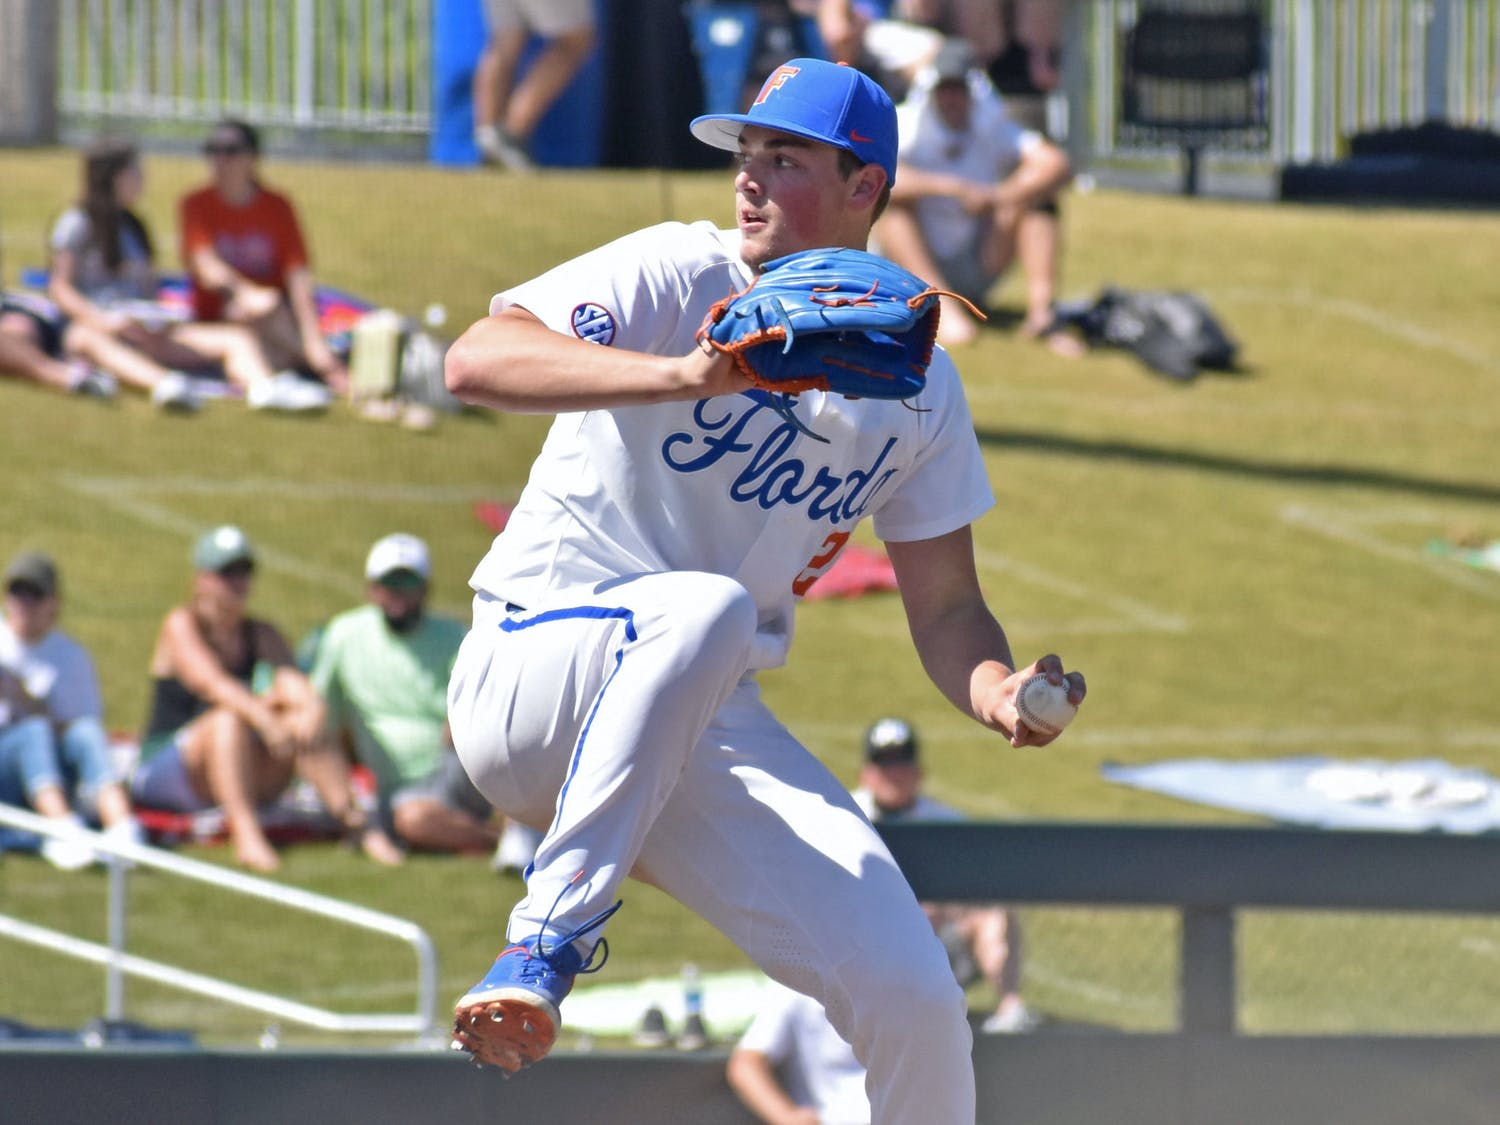 The Gators travel to Columbia, South Carolina, Friday to take on No. 20 South Carolina in their first away SEC series. Photo from UF-Jacksonville game March 14.